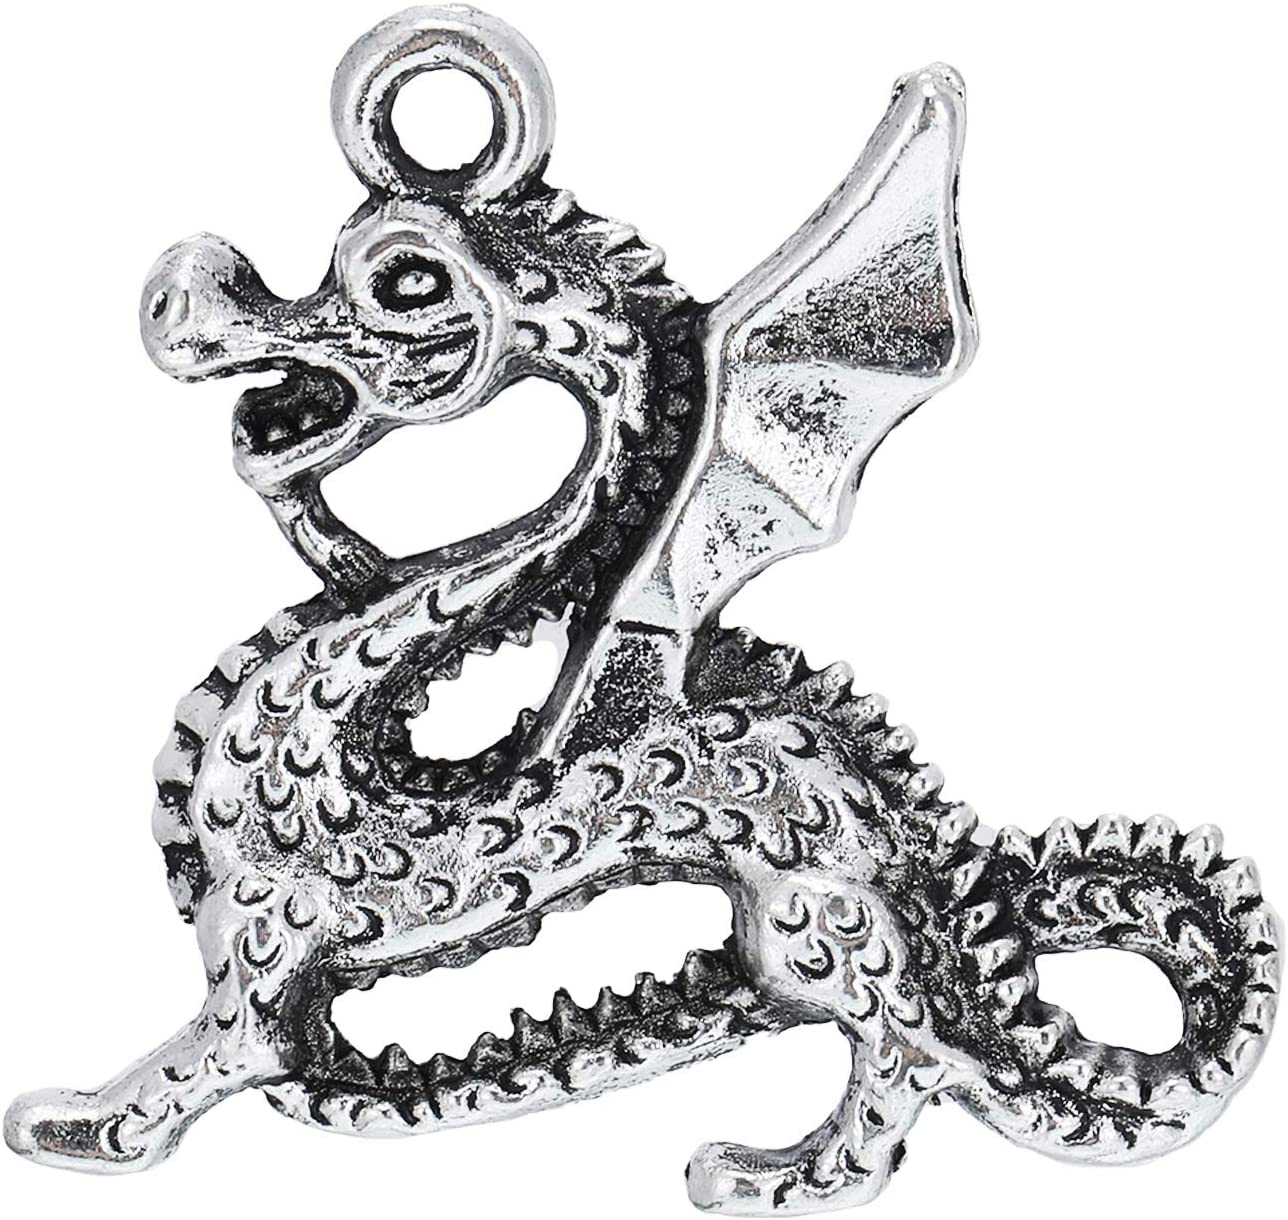 WILLBOND 70 Pieces Charm Collections Antique Silver Pendant Charms Jewelry Crafting Supplies for DIY Necklace Bracelet Christmas Charms